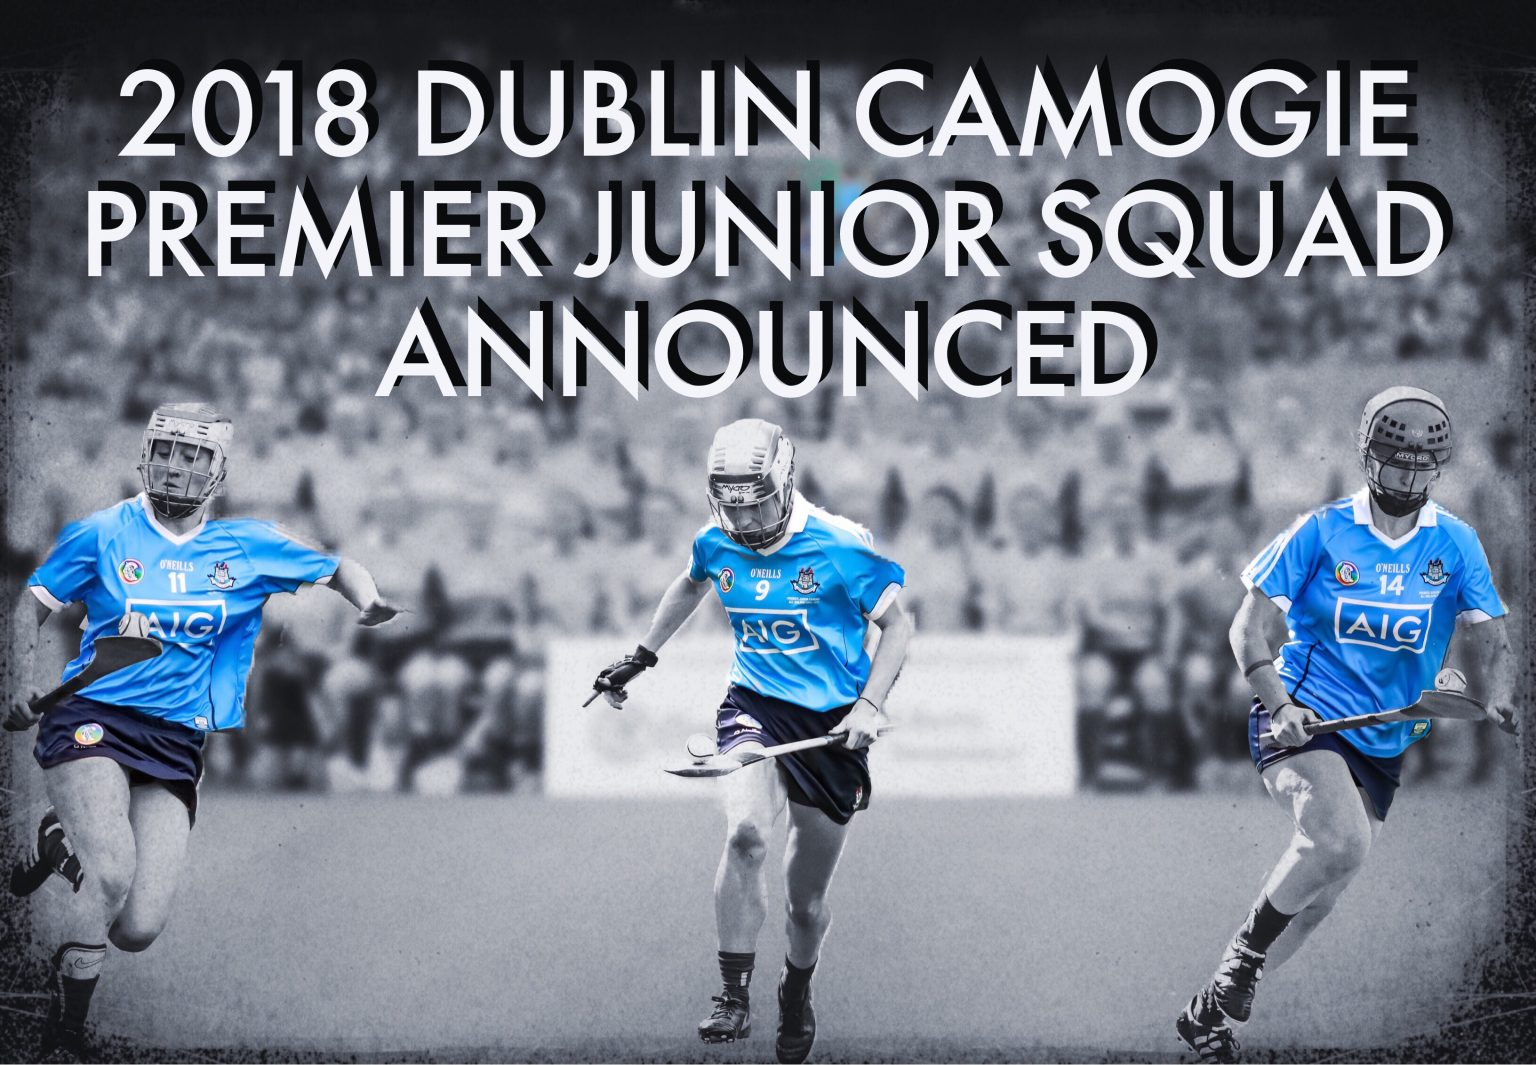 Image of Three Of The Dublin Premier Junior Camogie Team In Action During The 2017 All Ireland Final